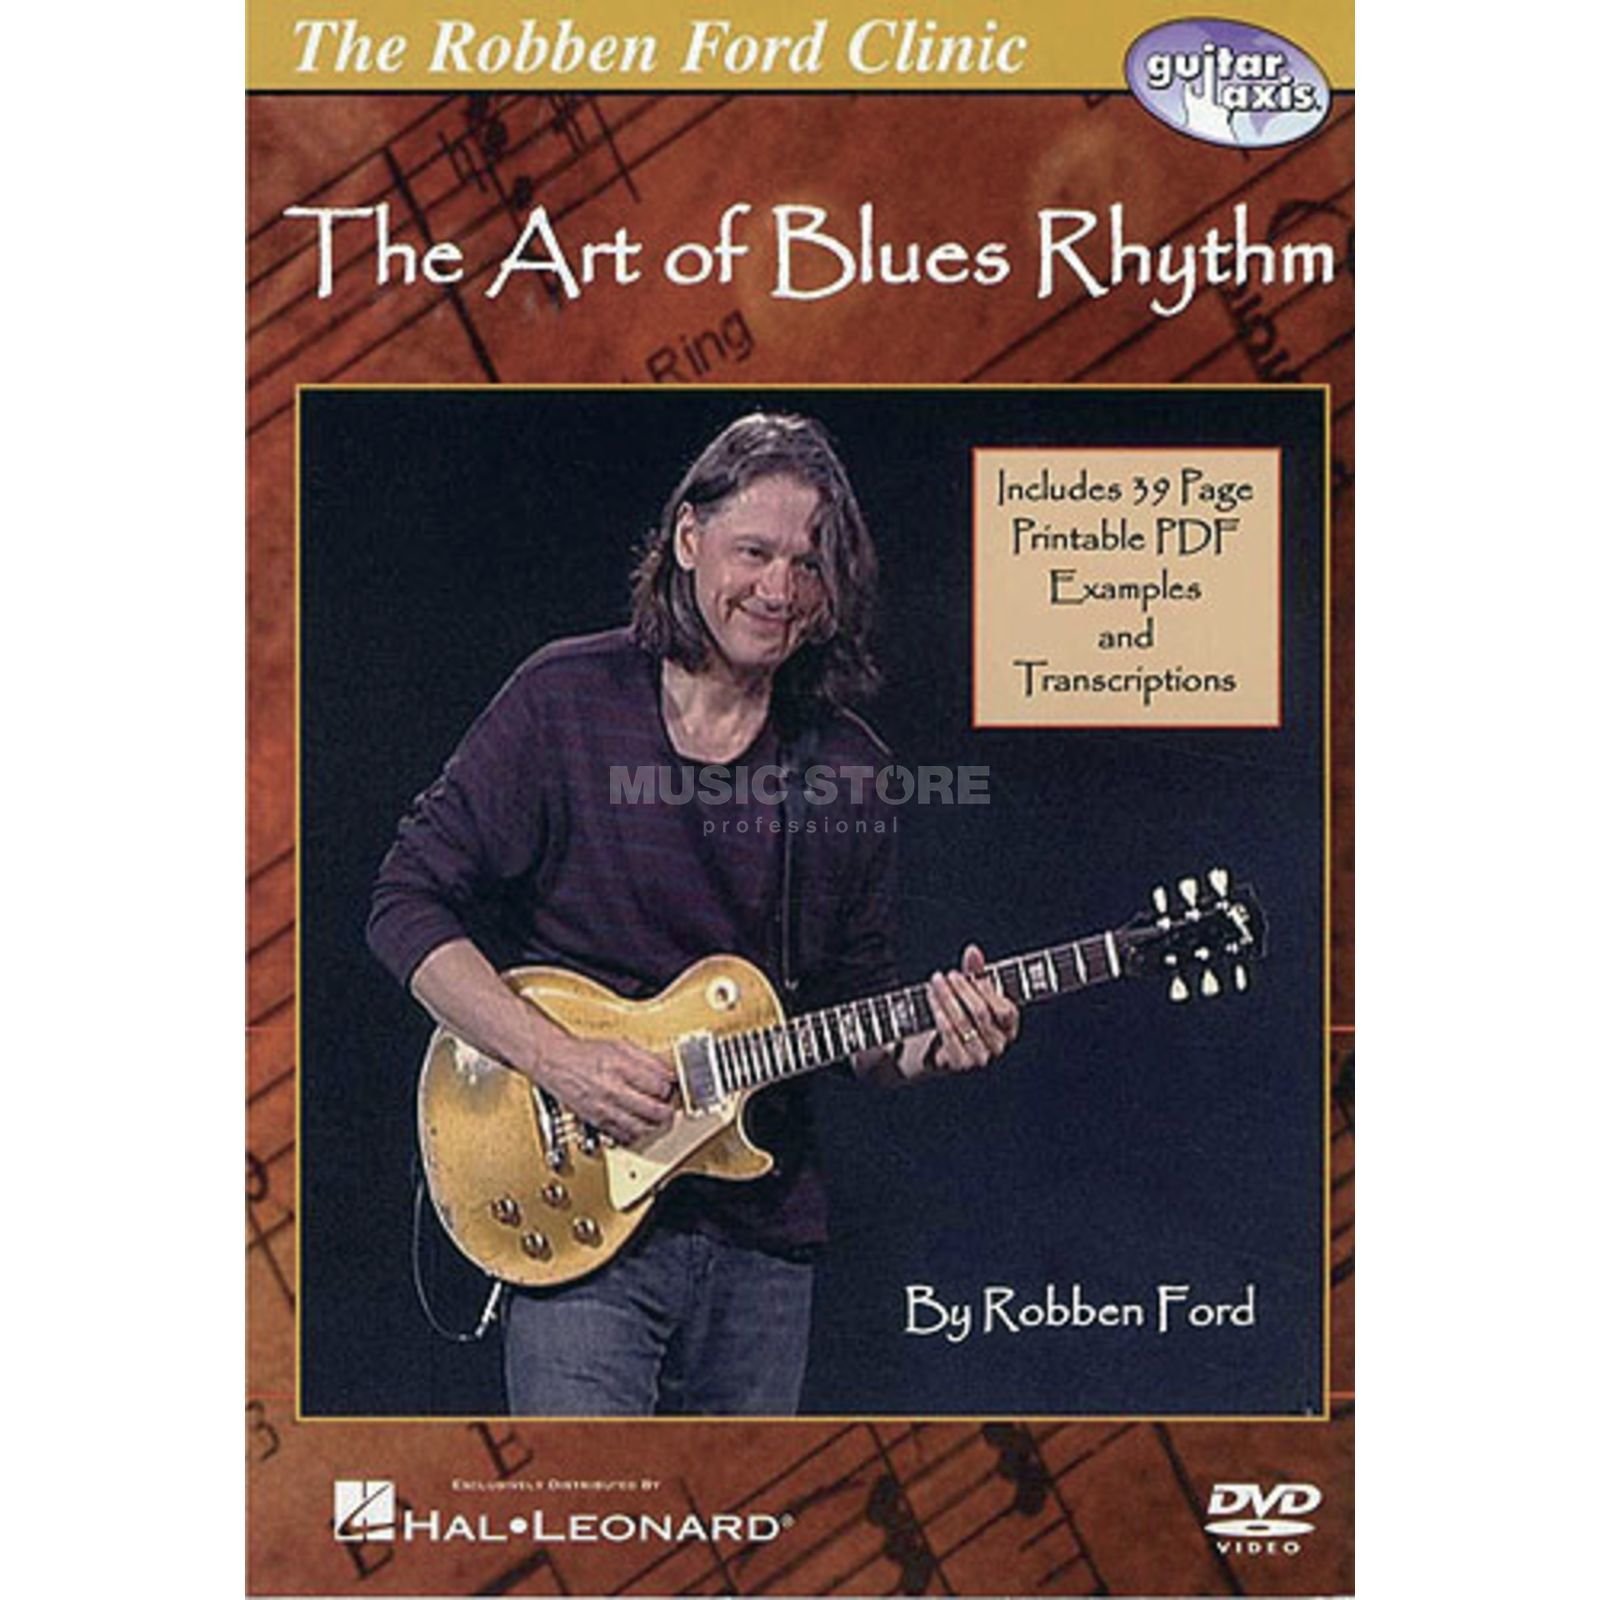 Hal Leonard Robben Ford - Art Blues Rhythm DVD Product Image